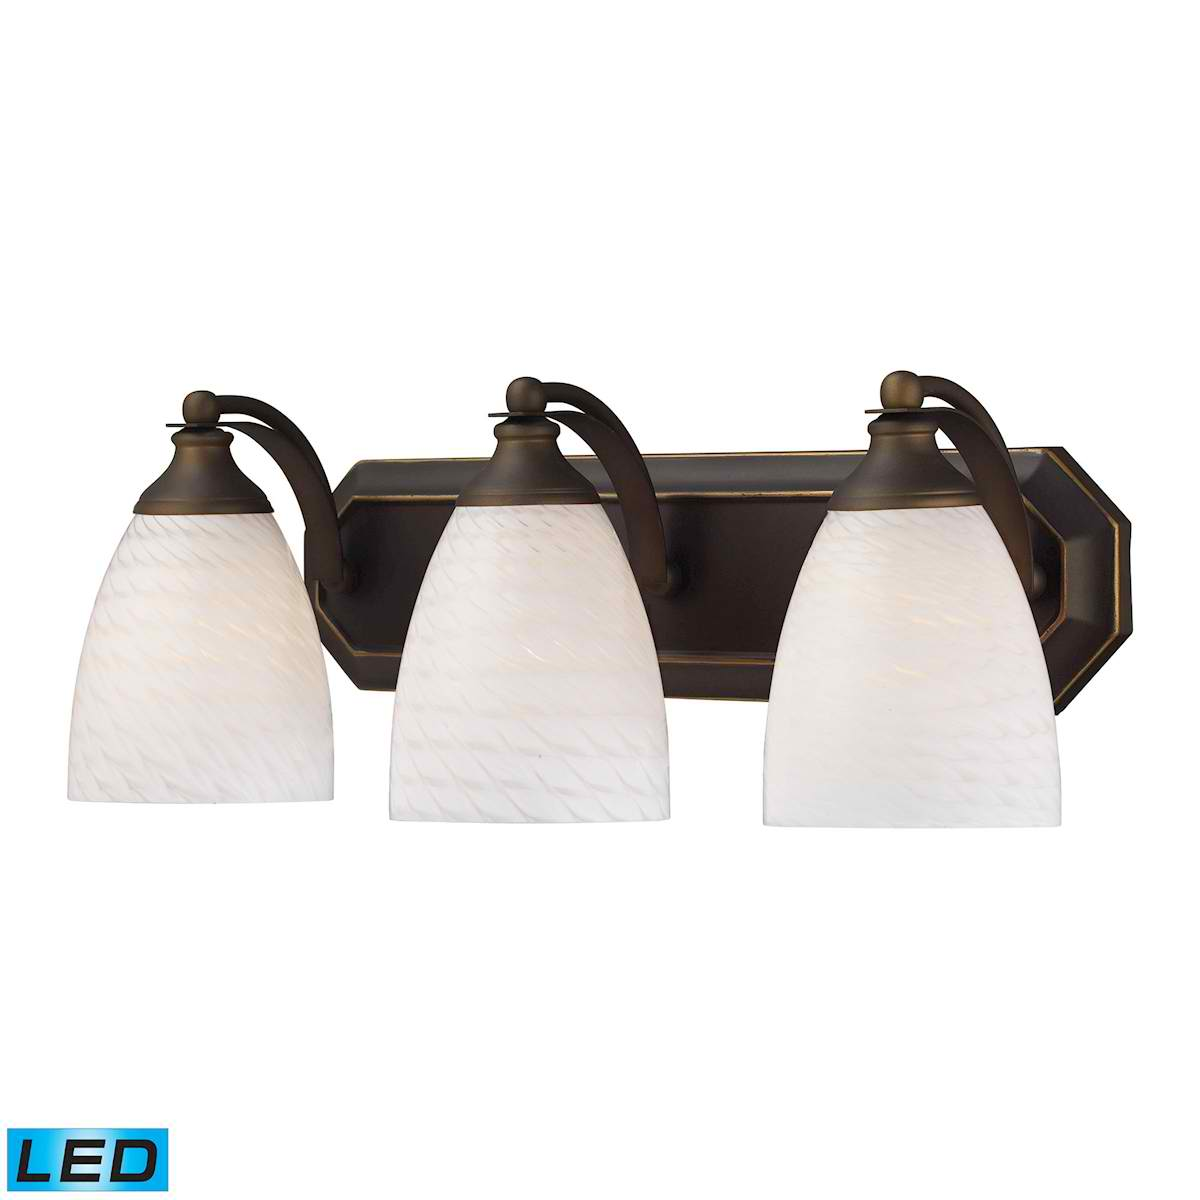 3 Light Vanity in Aged Bronze and White Swirl Glass - LED, 800 Lumens (2400 Lumens Total) with Full Scale